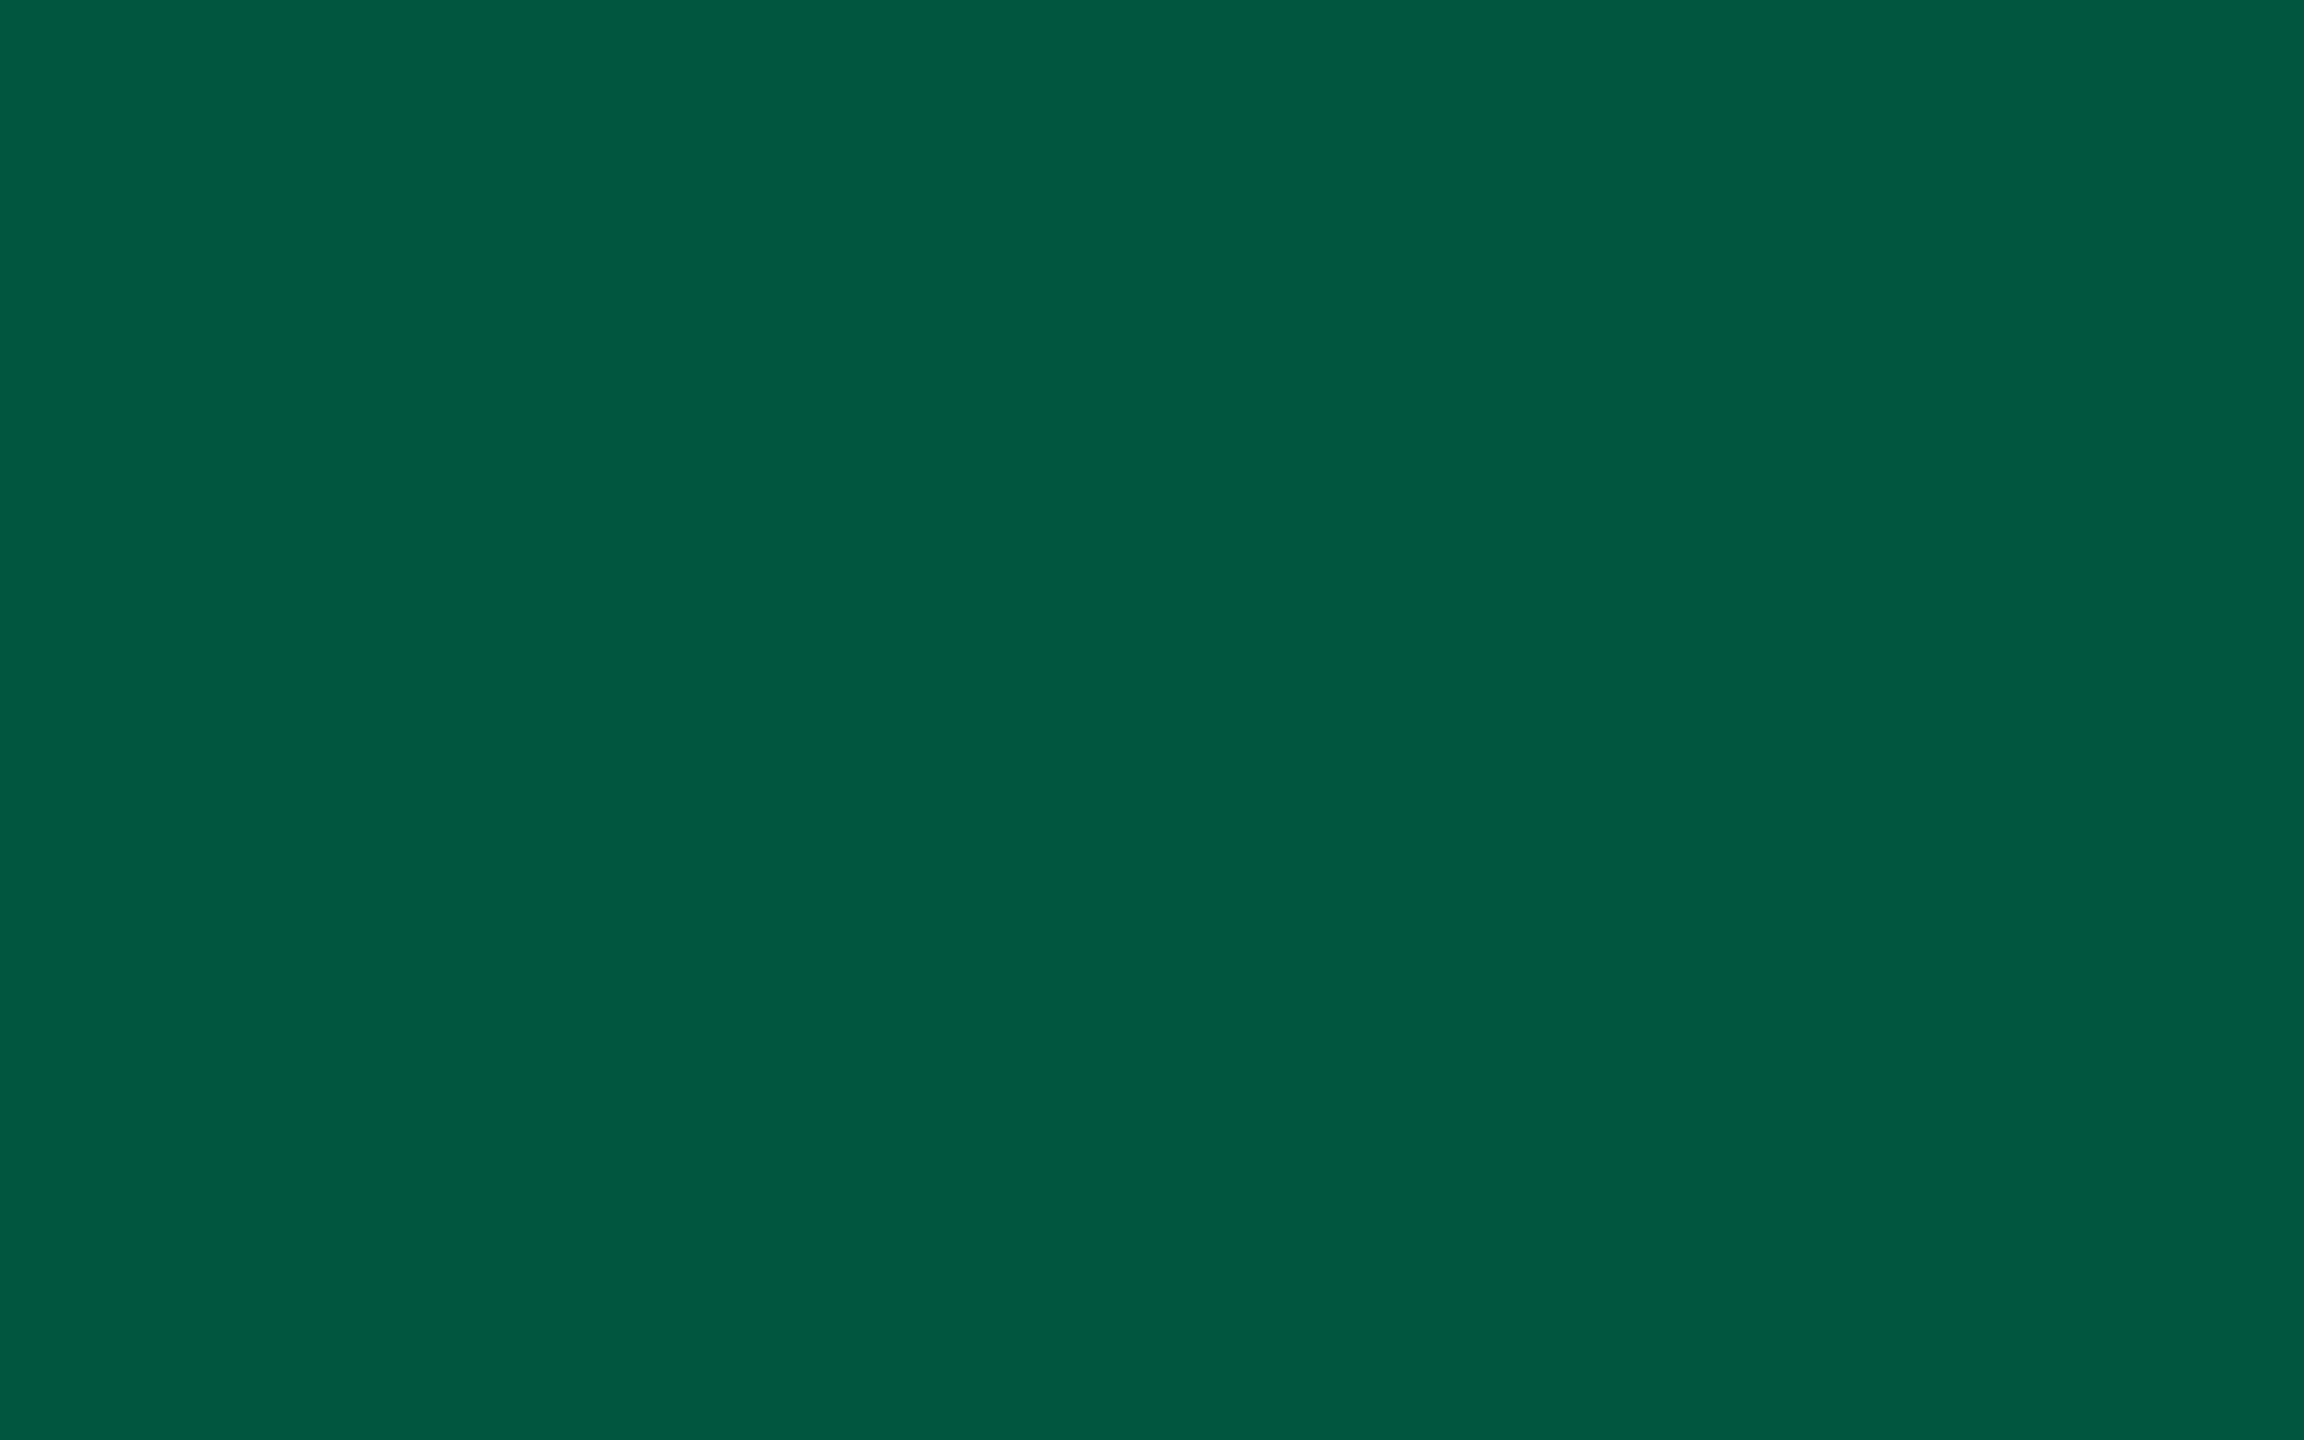 2304x1440 Castleton Green Solid Color Background